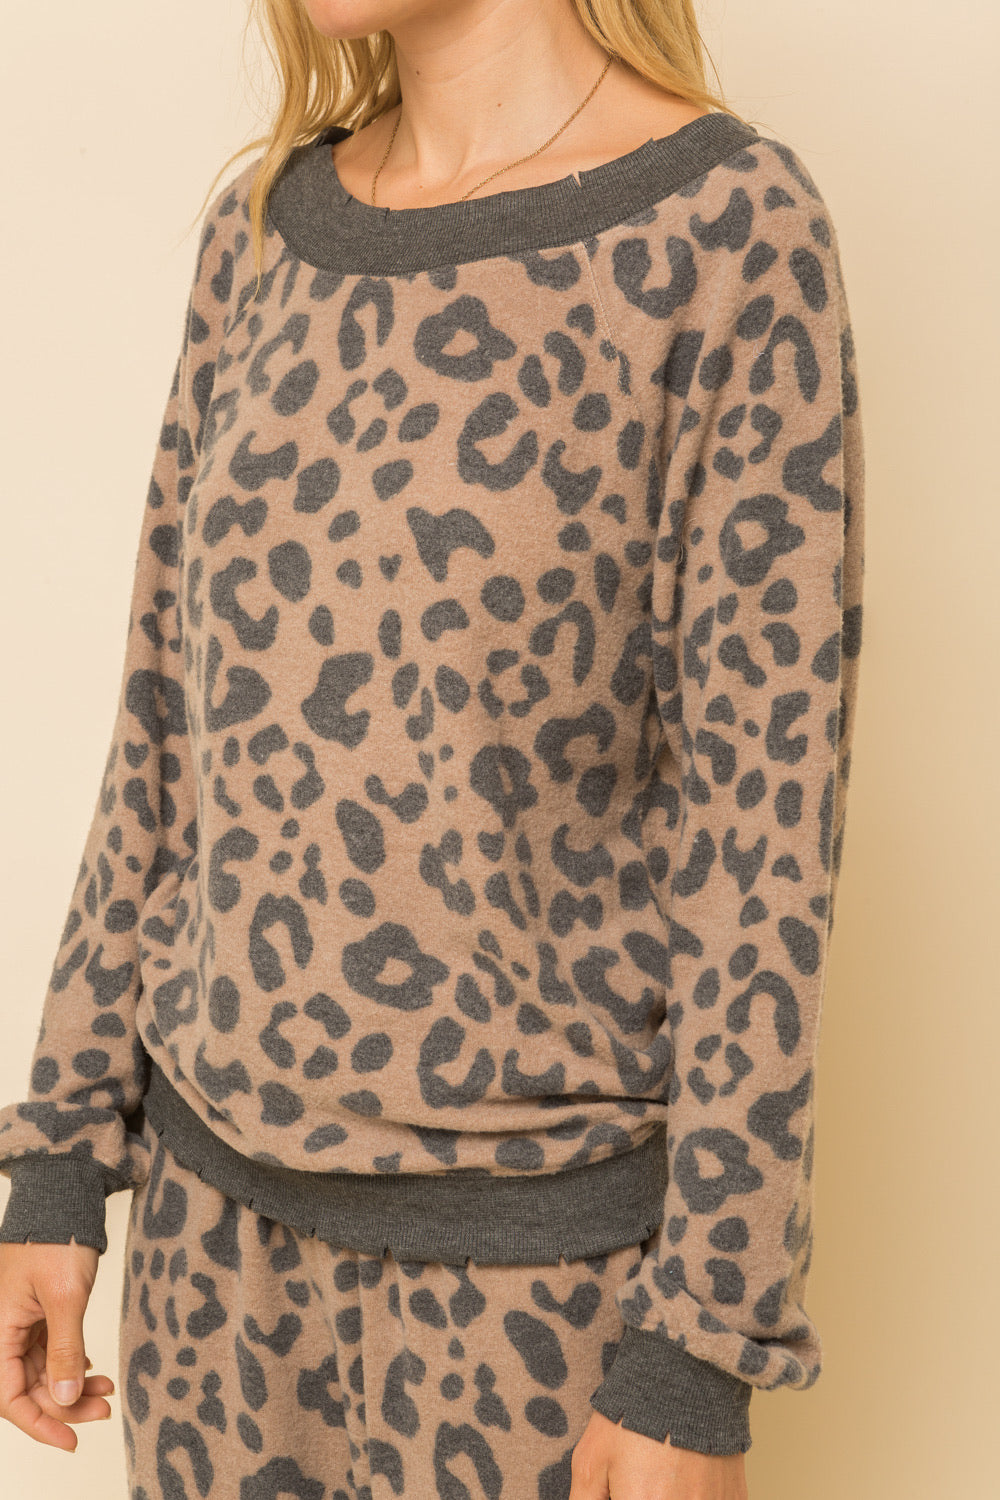 Taupe and Charcoal Animal Print Cozy Top